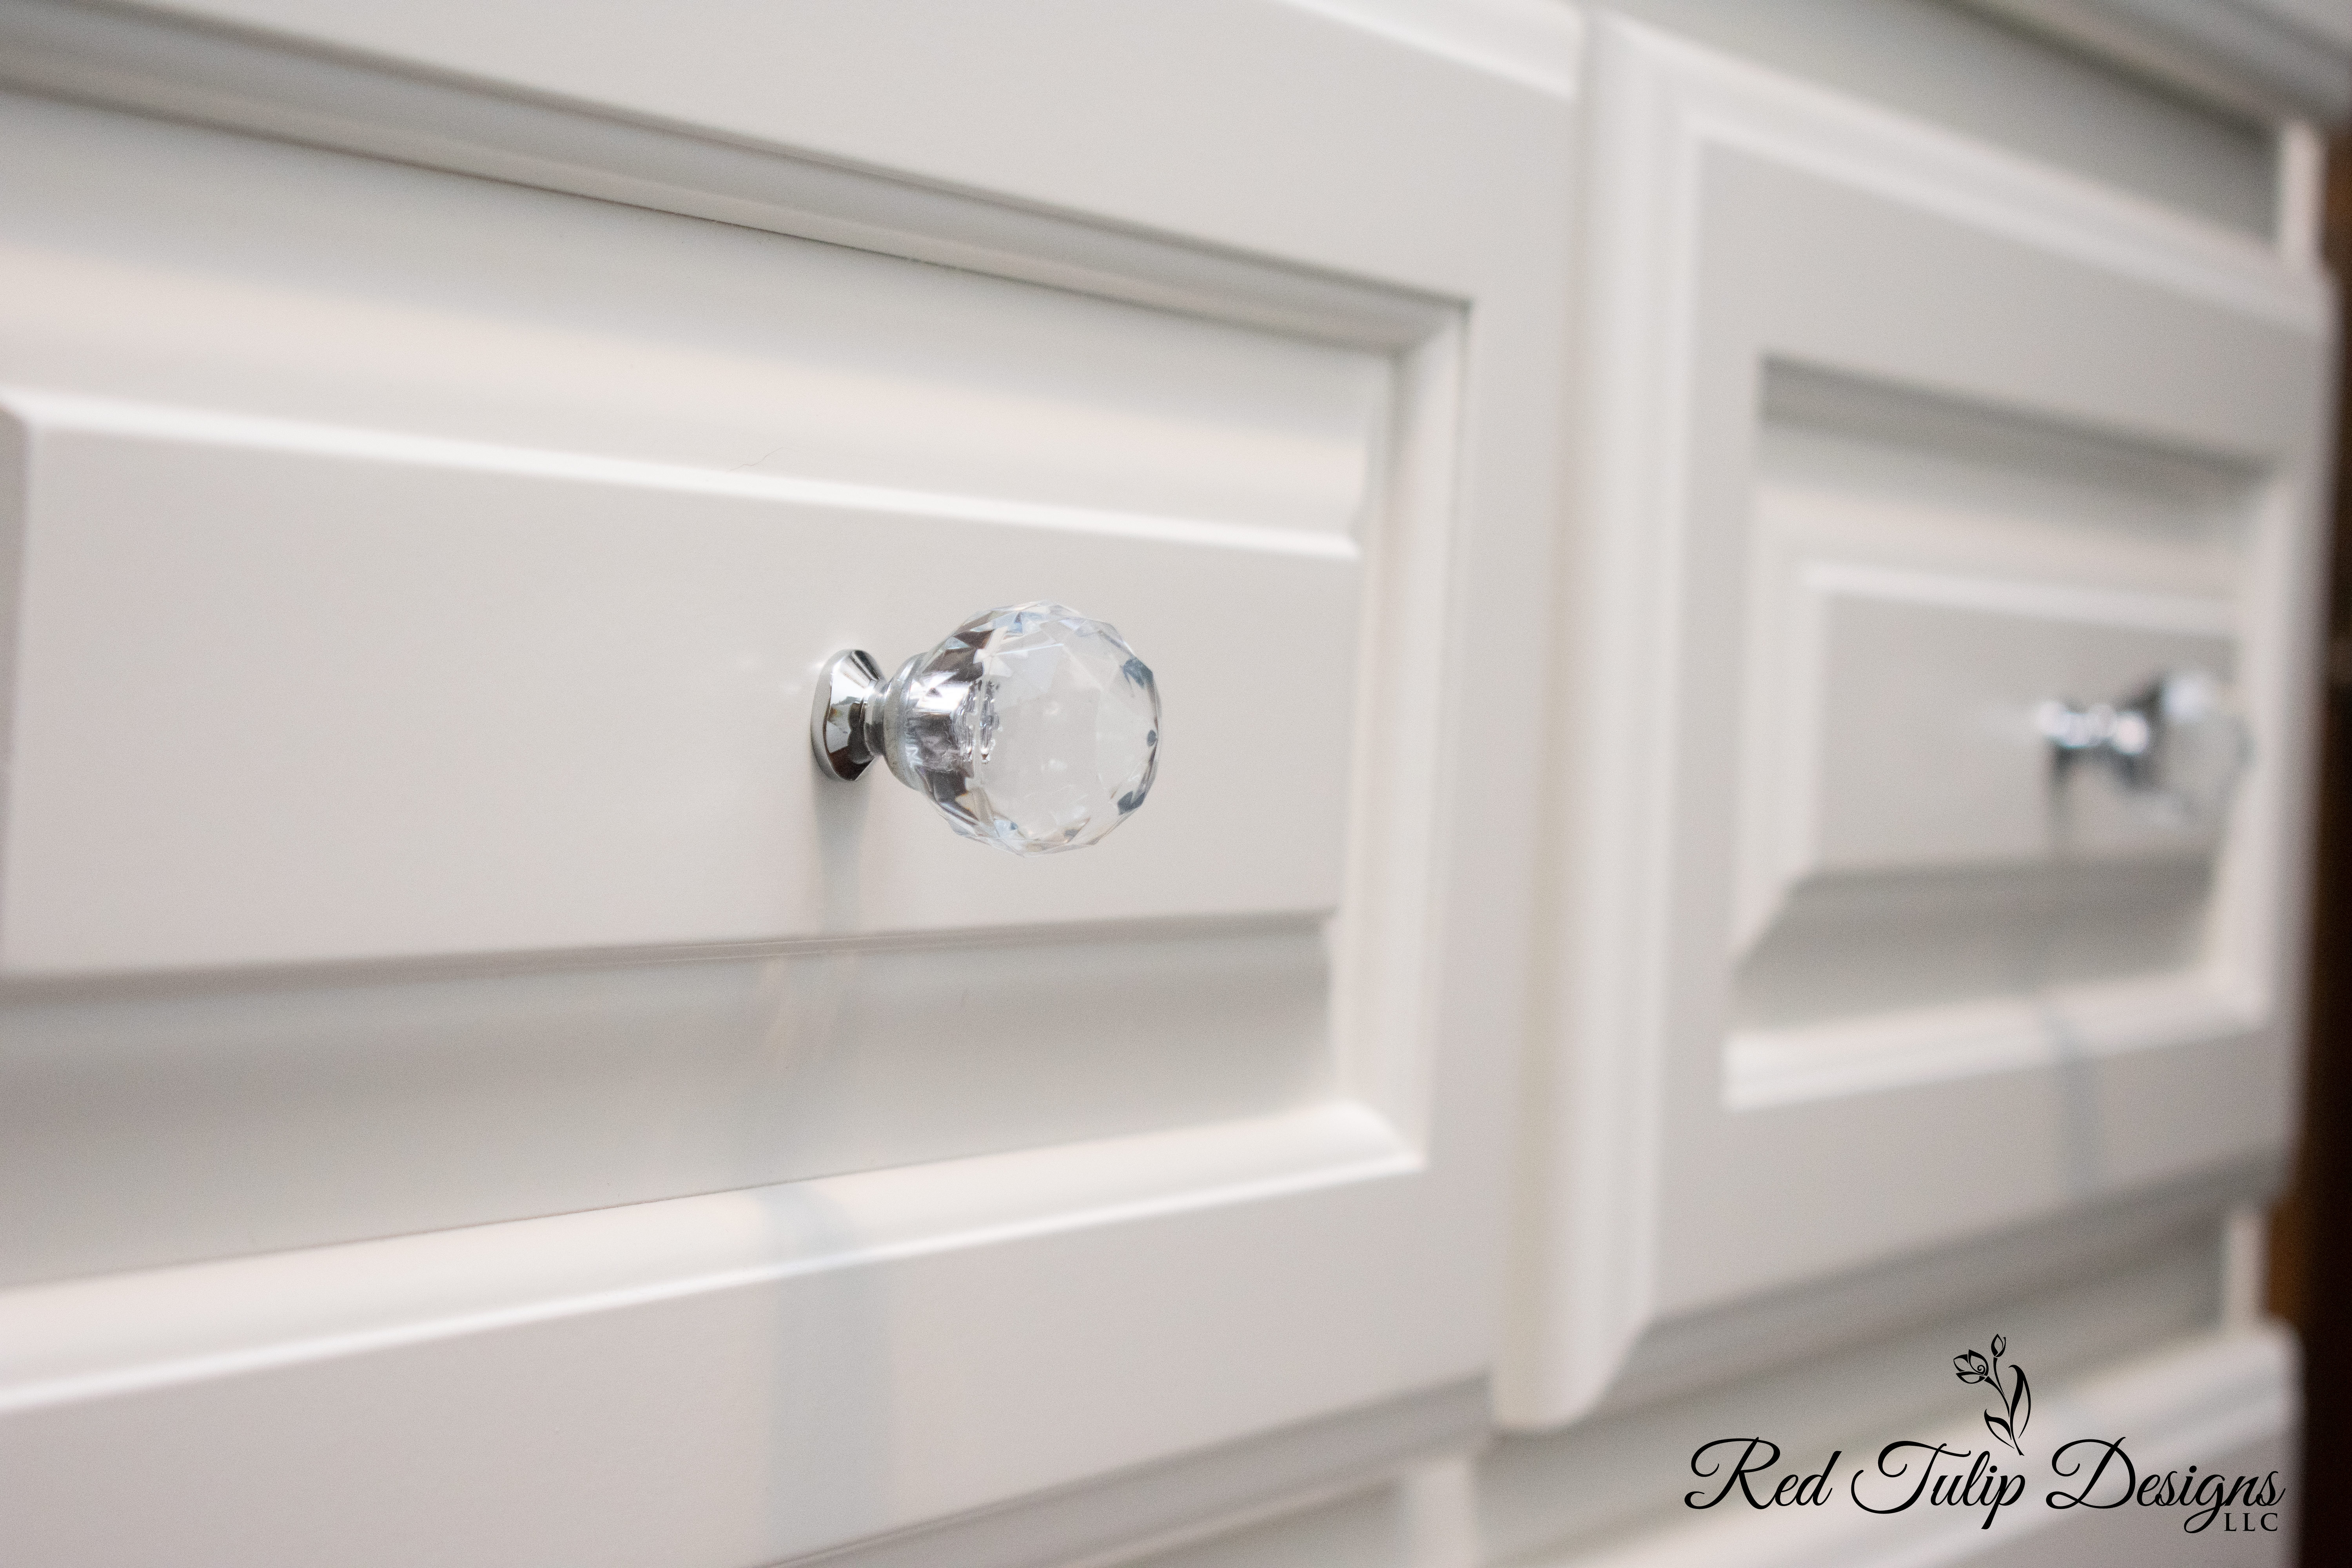 New Doors With Glass Knobs